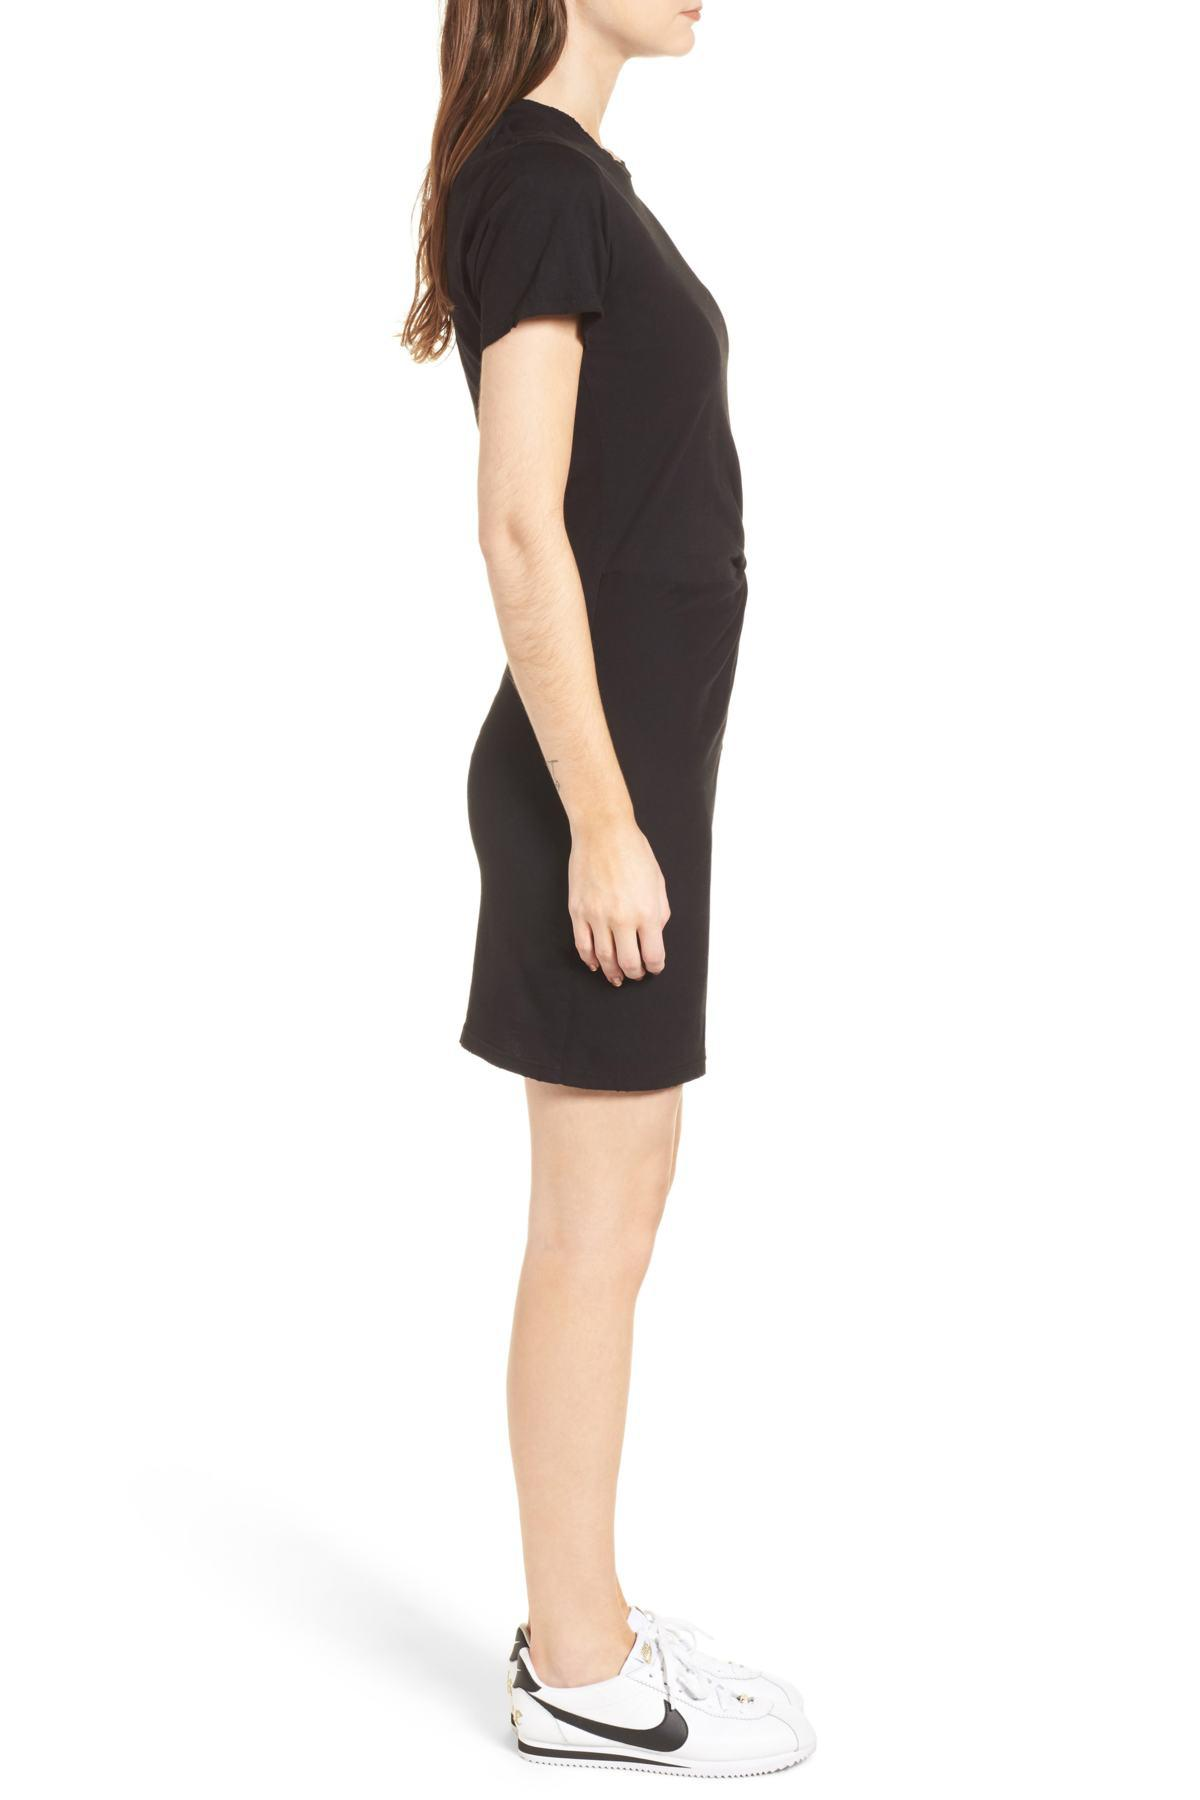 e84d09aaca2 Lyst - N Philanthropy Jazz Knotted T-shirt Dress in Black